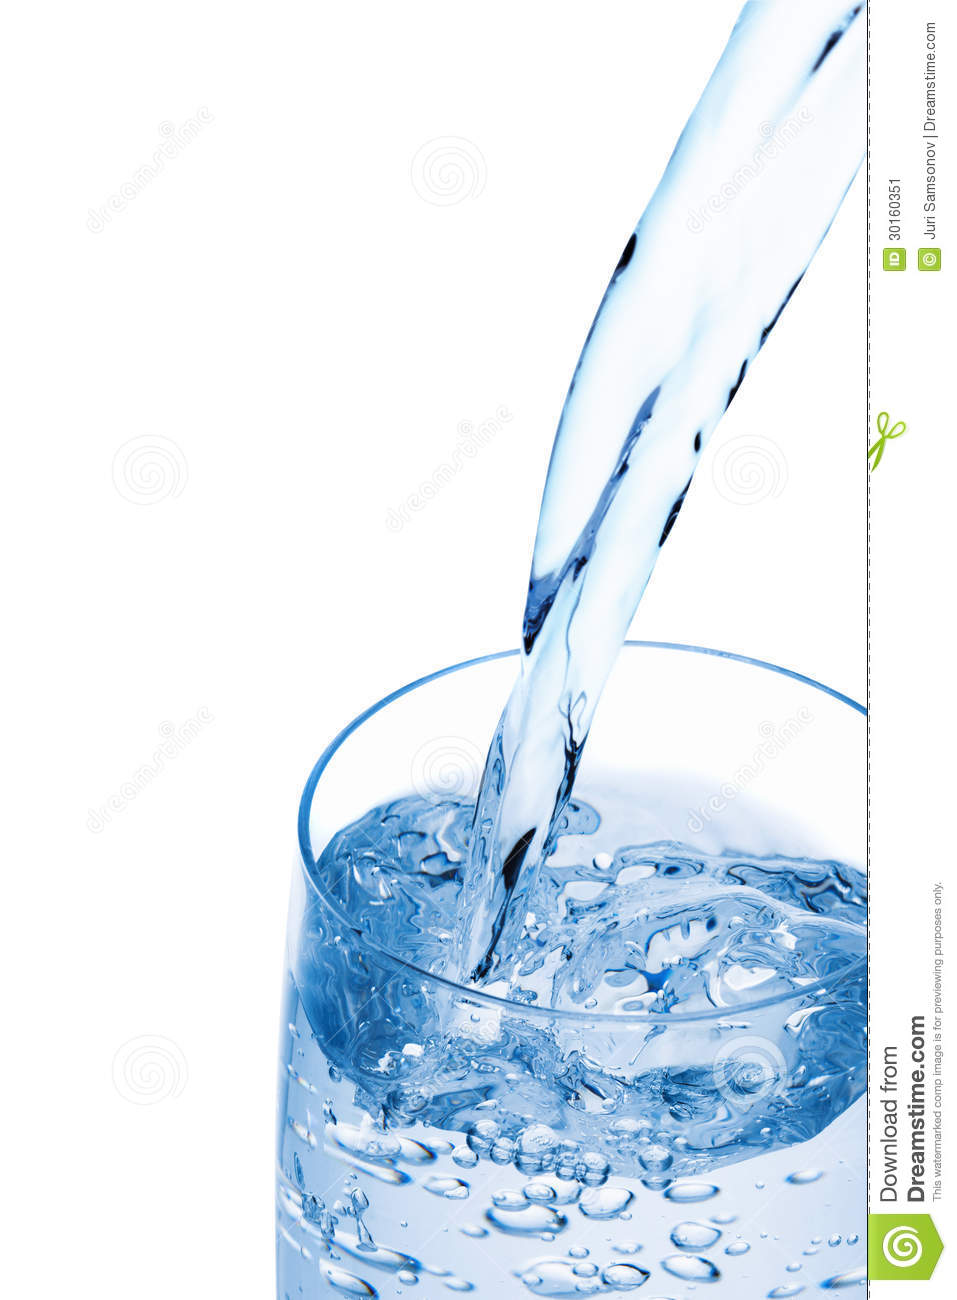 water pouring into a glass  stock image